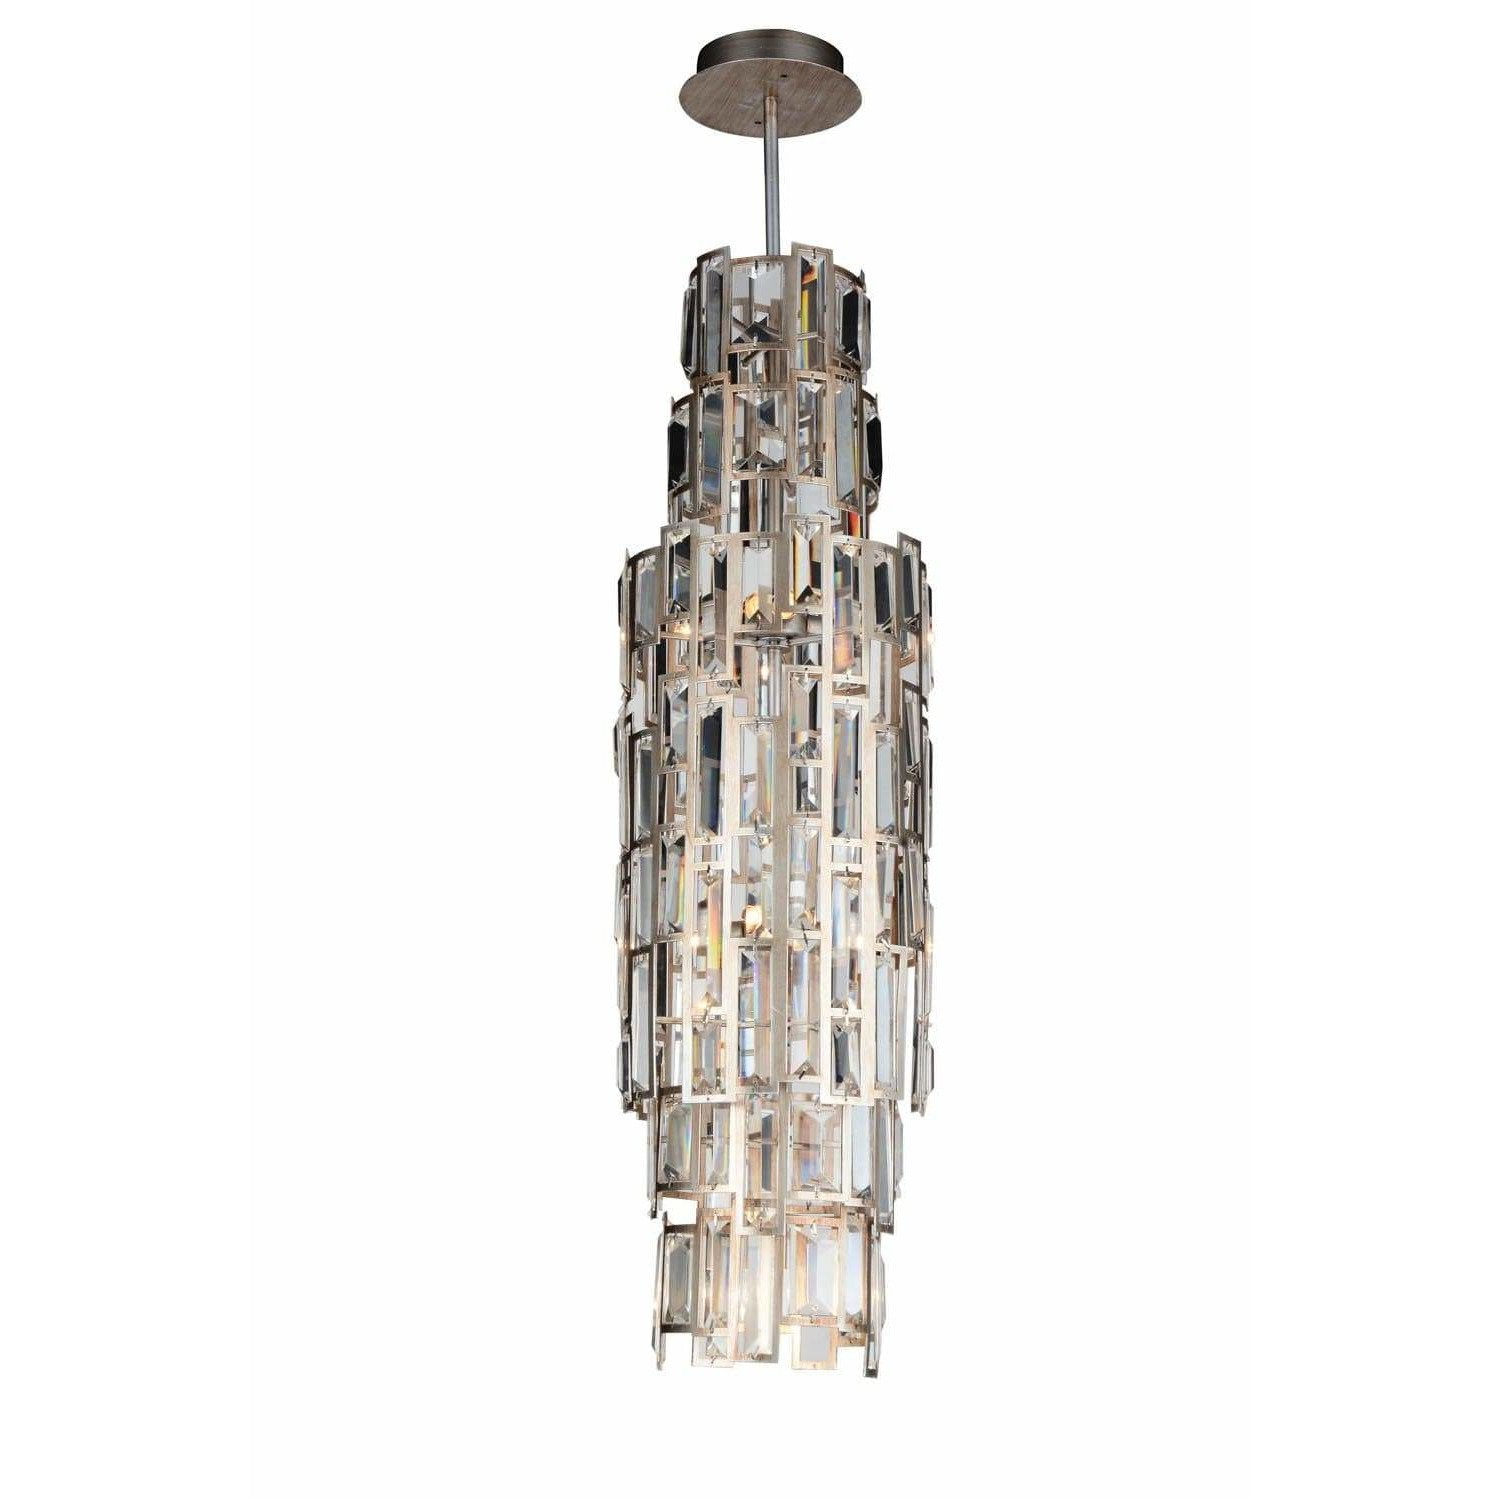 CWI Lighting Mini Chandeliers Champagne / K9 Clear Quida 7 Light Down Mini Chandelier with Champagne finish by CWI Lighting 9903P10-7-193